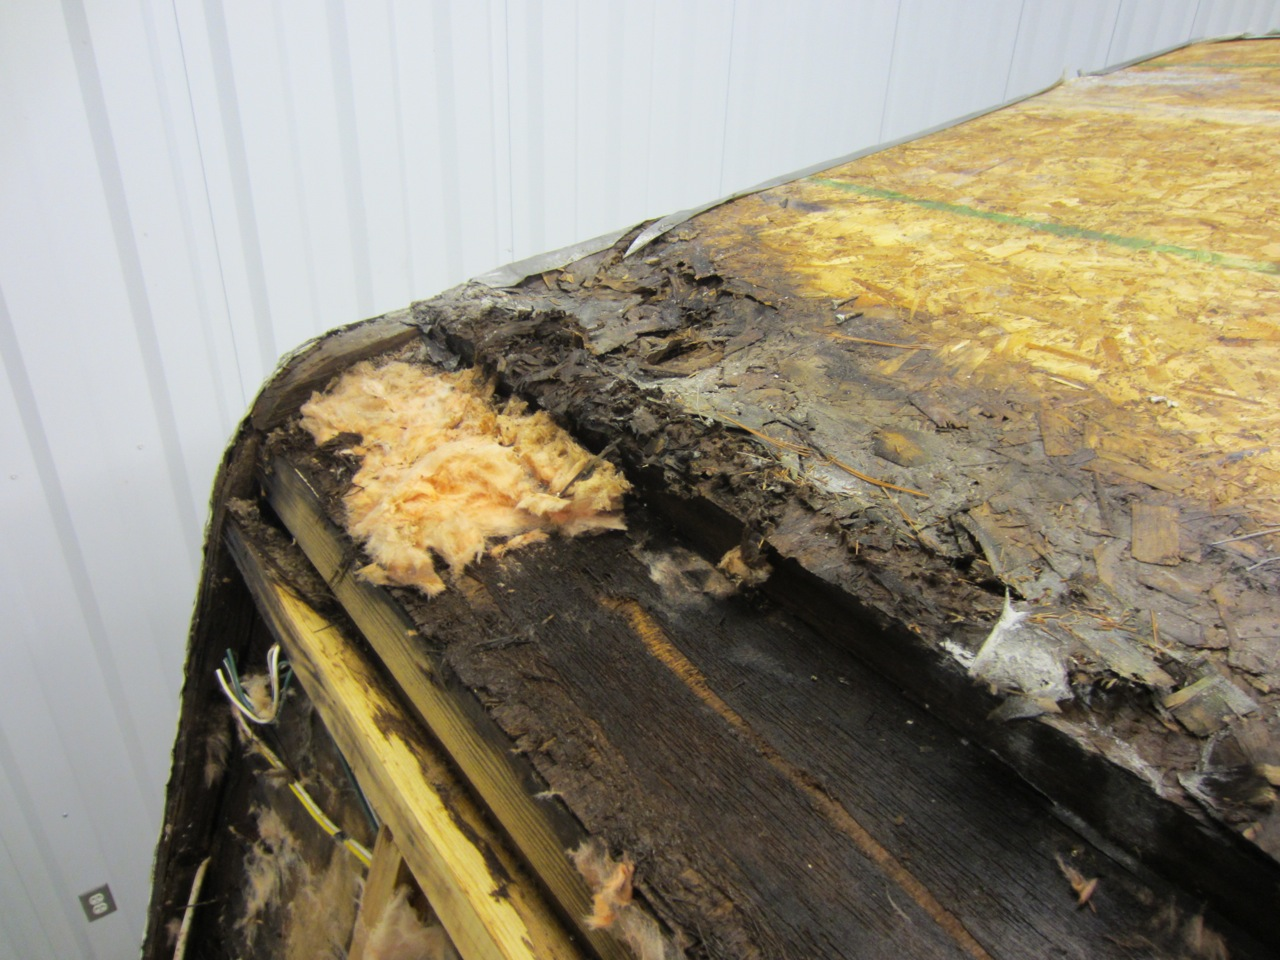 The wood and insulation was wet on the roof.